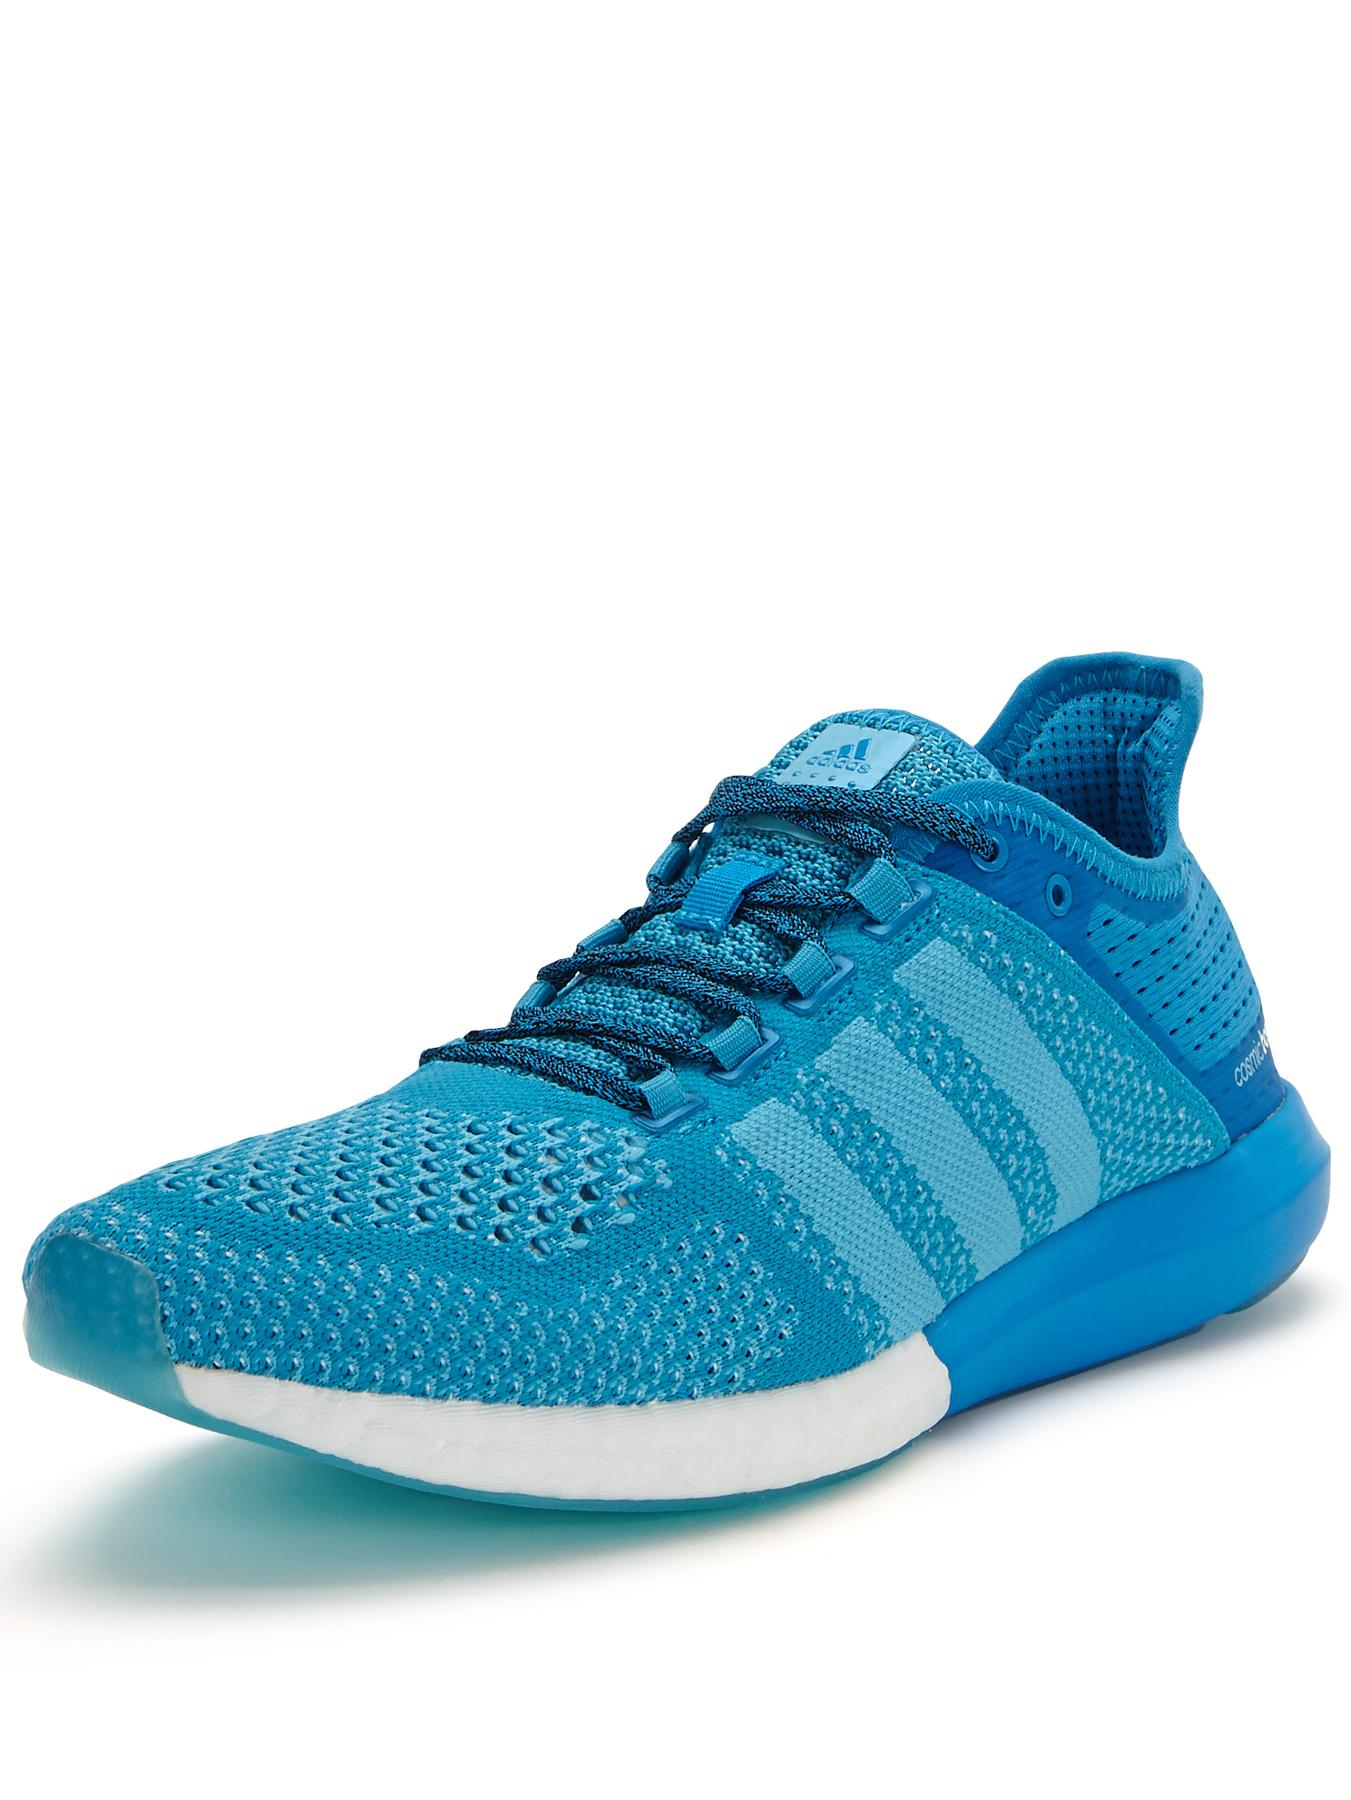 Adidas Cc Cosmic Boost Trainers